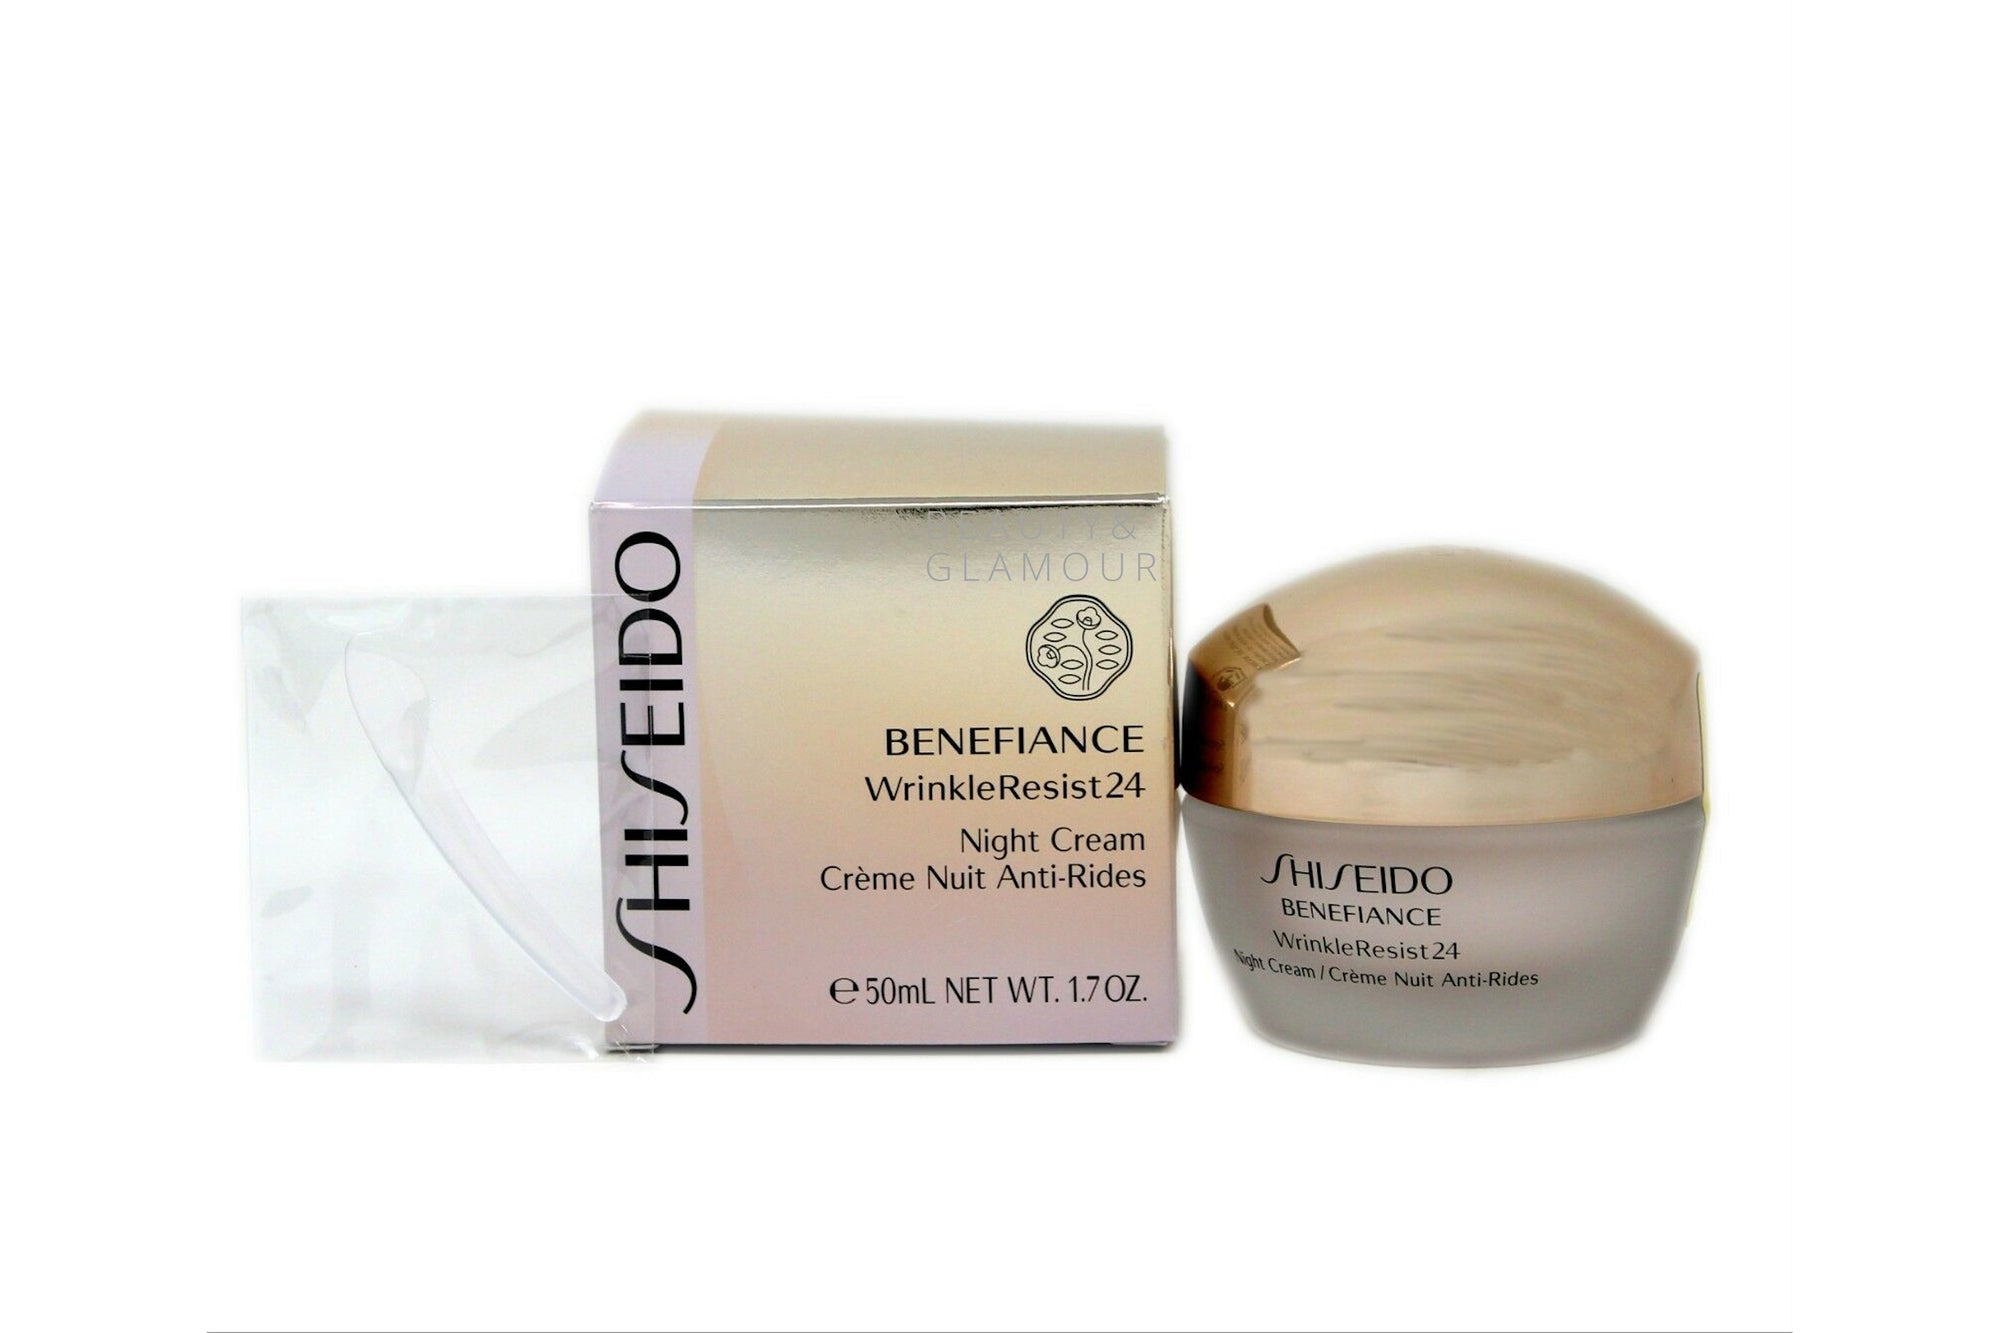 SHISEIDO BENEFIANCE WRINKLE RESIST 24 NIGHT CREAM ANTI-RIDES